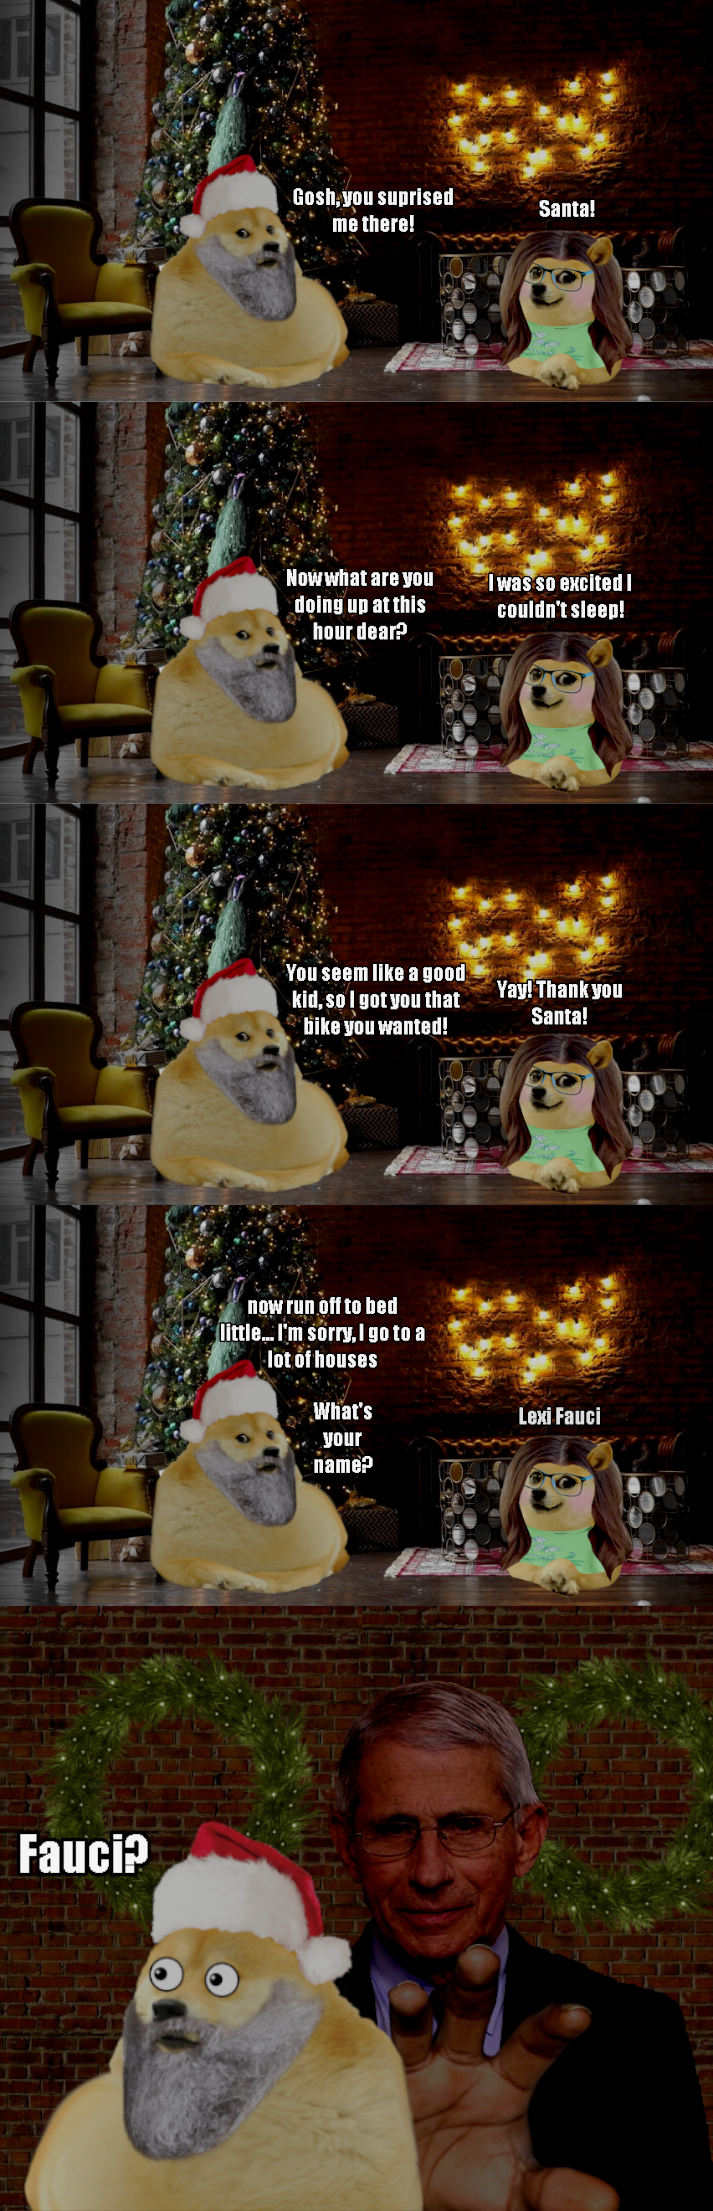 Le Christmas Gift Has Arrived R Dogelore Ironic Doge Memes Know Your Meme The history of christmas cards. ironic doge memes